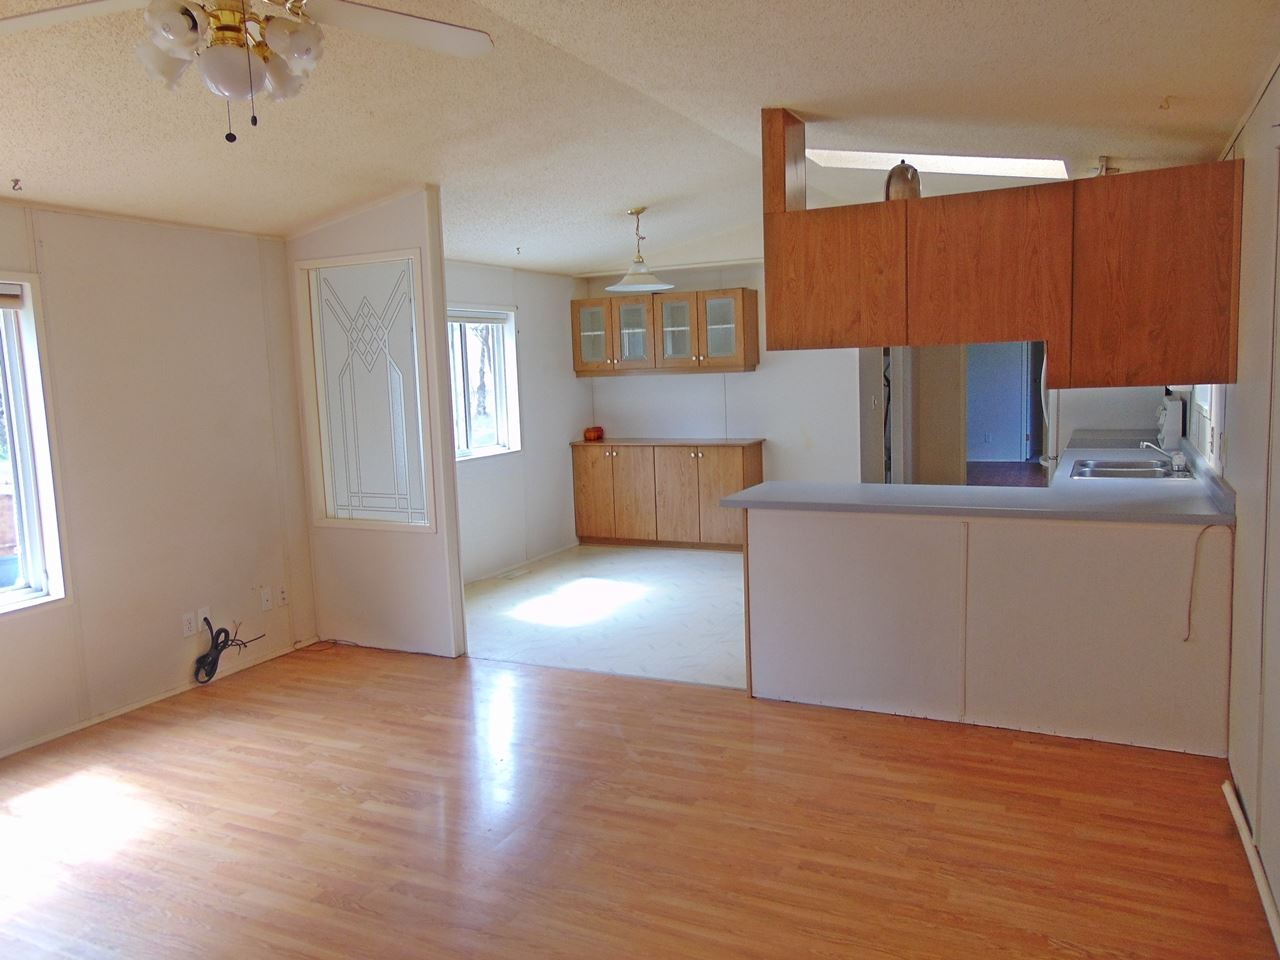 Photo 8: 56215 Rge Rd 234: Rural Sturgeon County Manufactured Home for sale : MLS(r) # E4063049